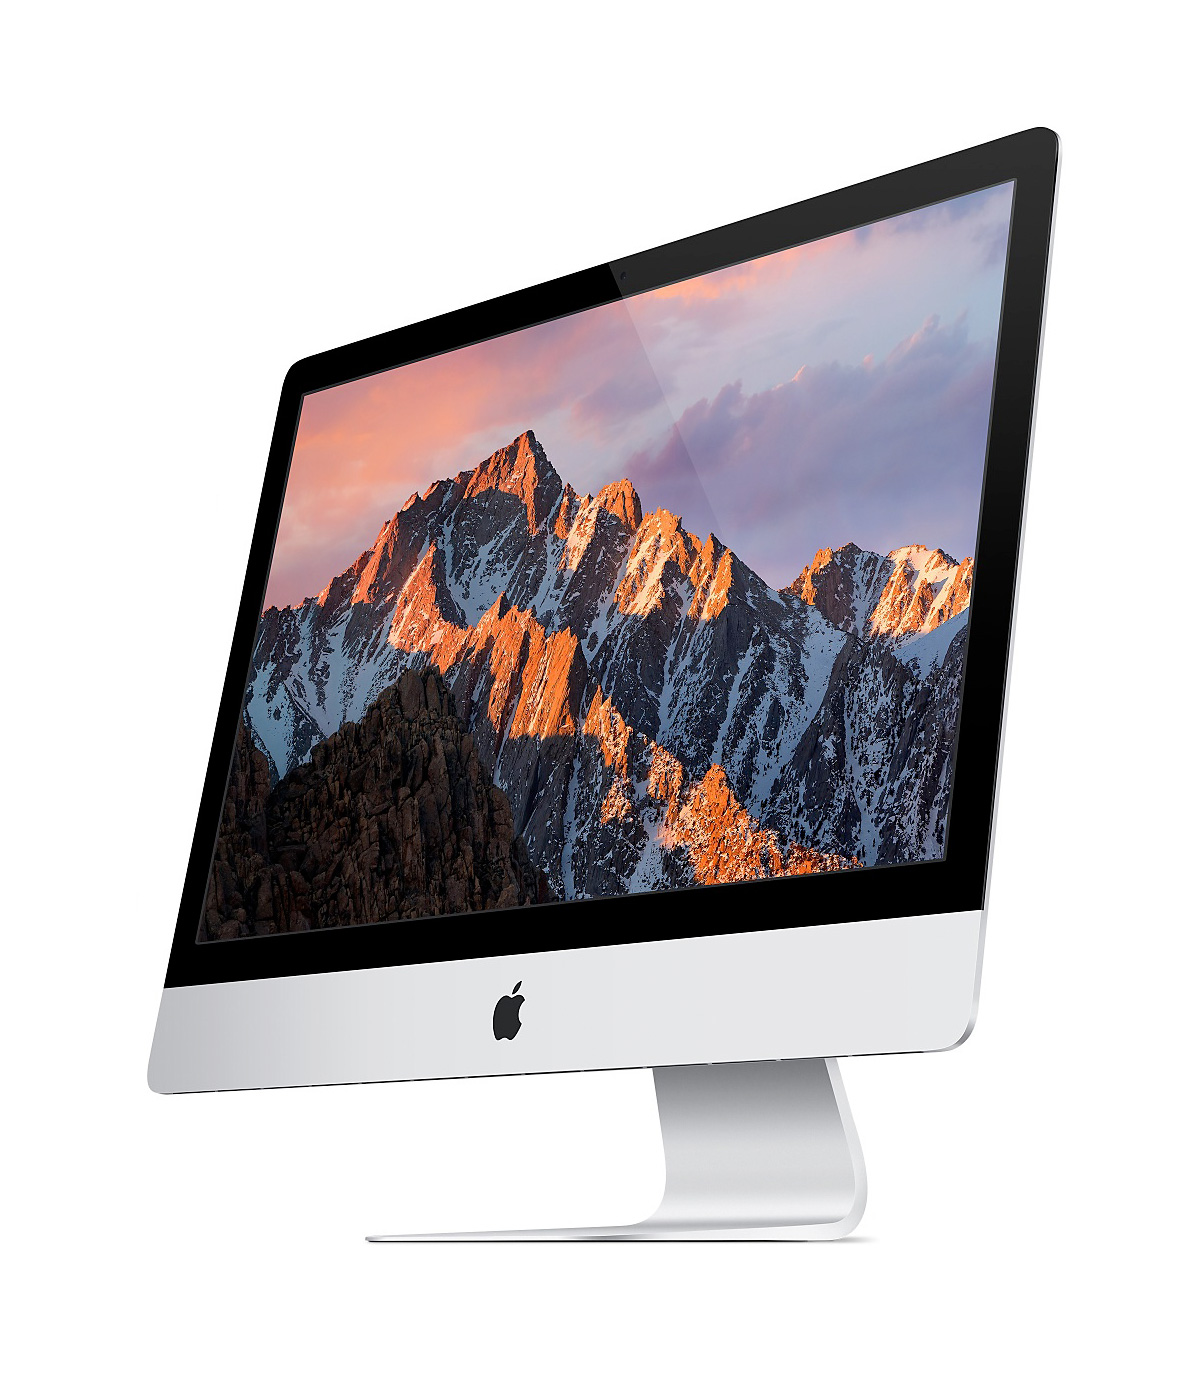 apple imac 27 2017 mnea2fn a achetez au meilleur prix. Black Bedroom Furniture Sets. Home Design Ideas